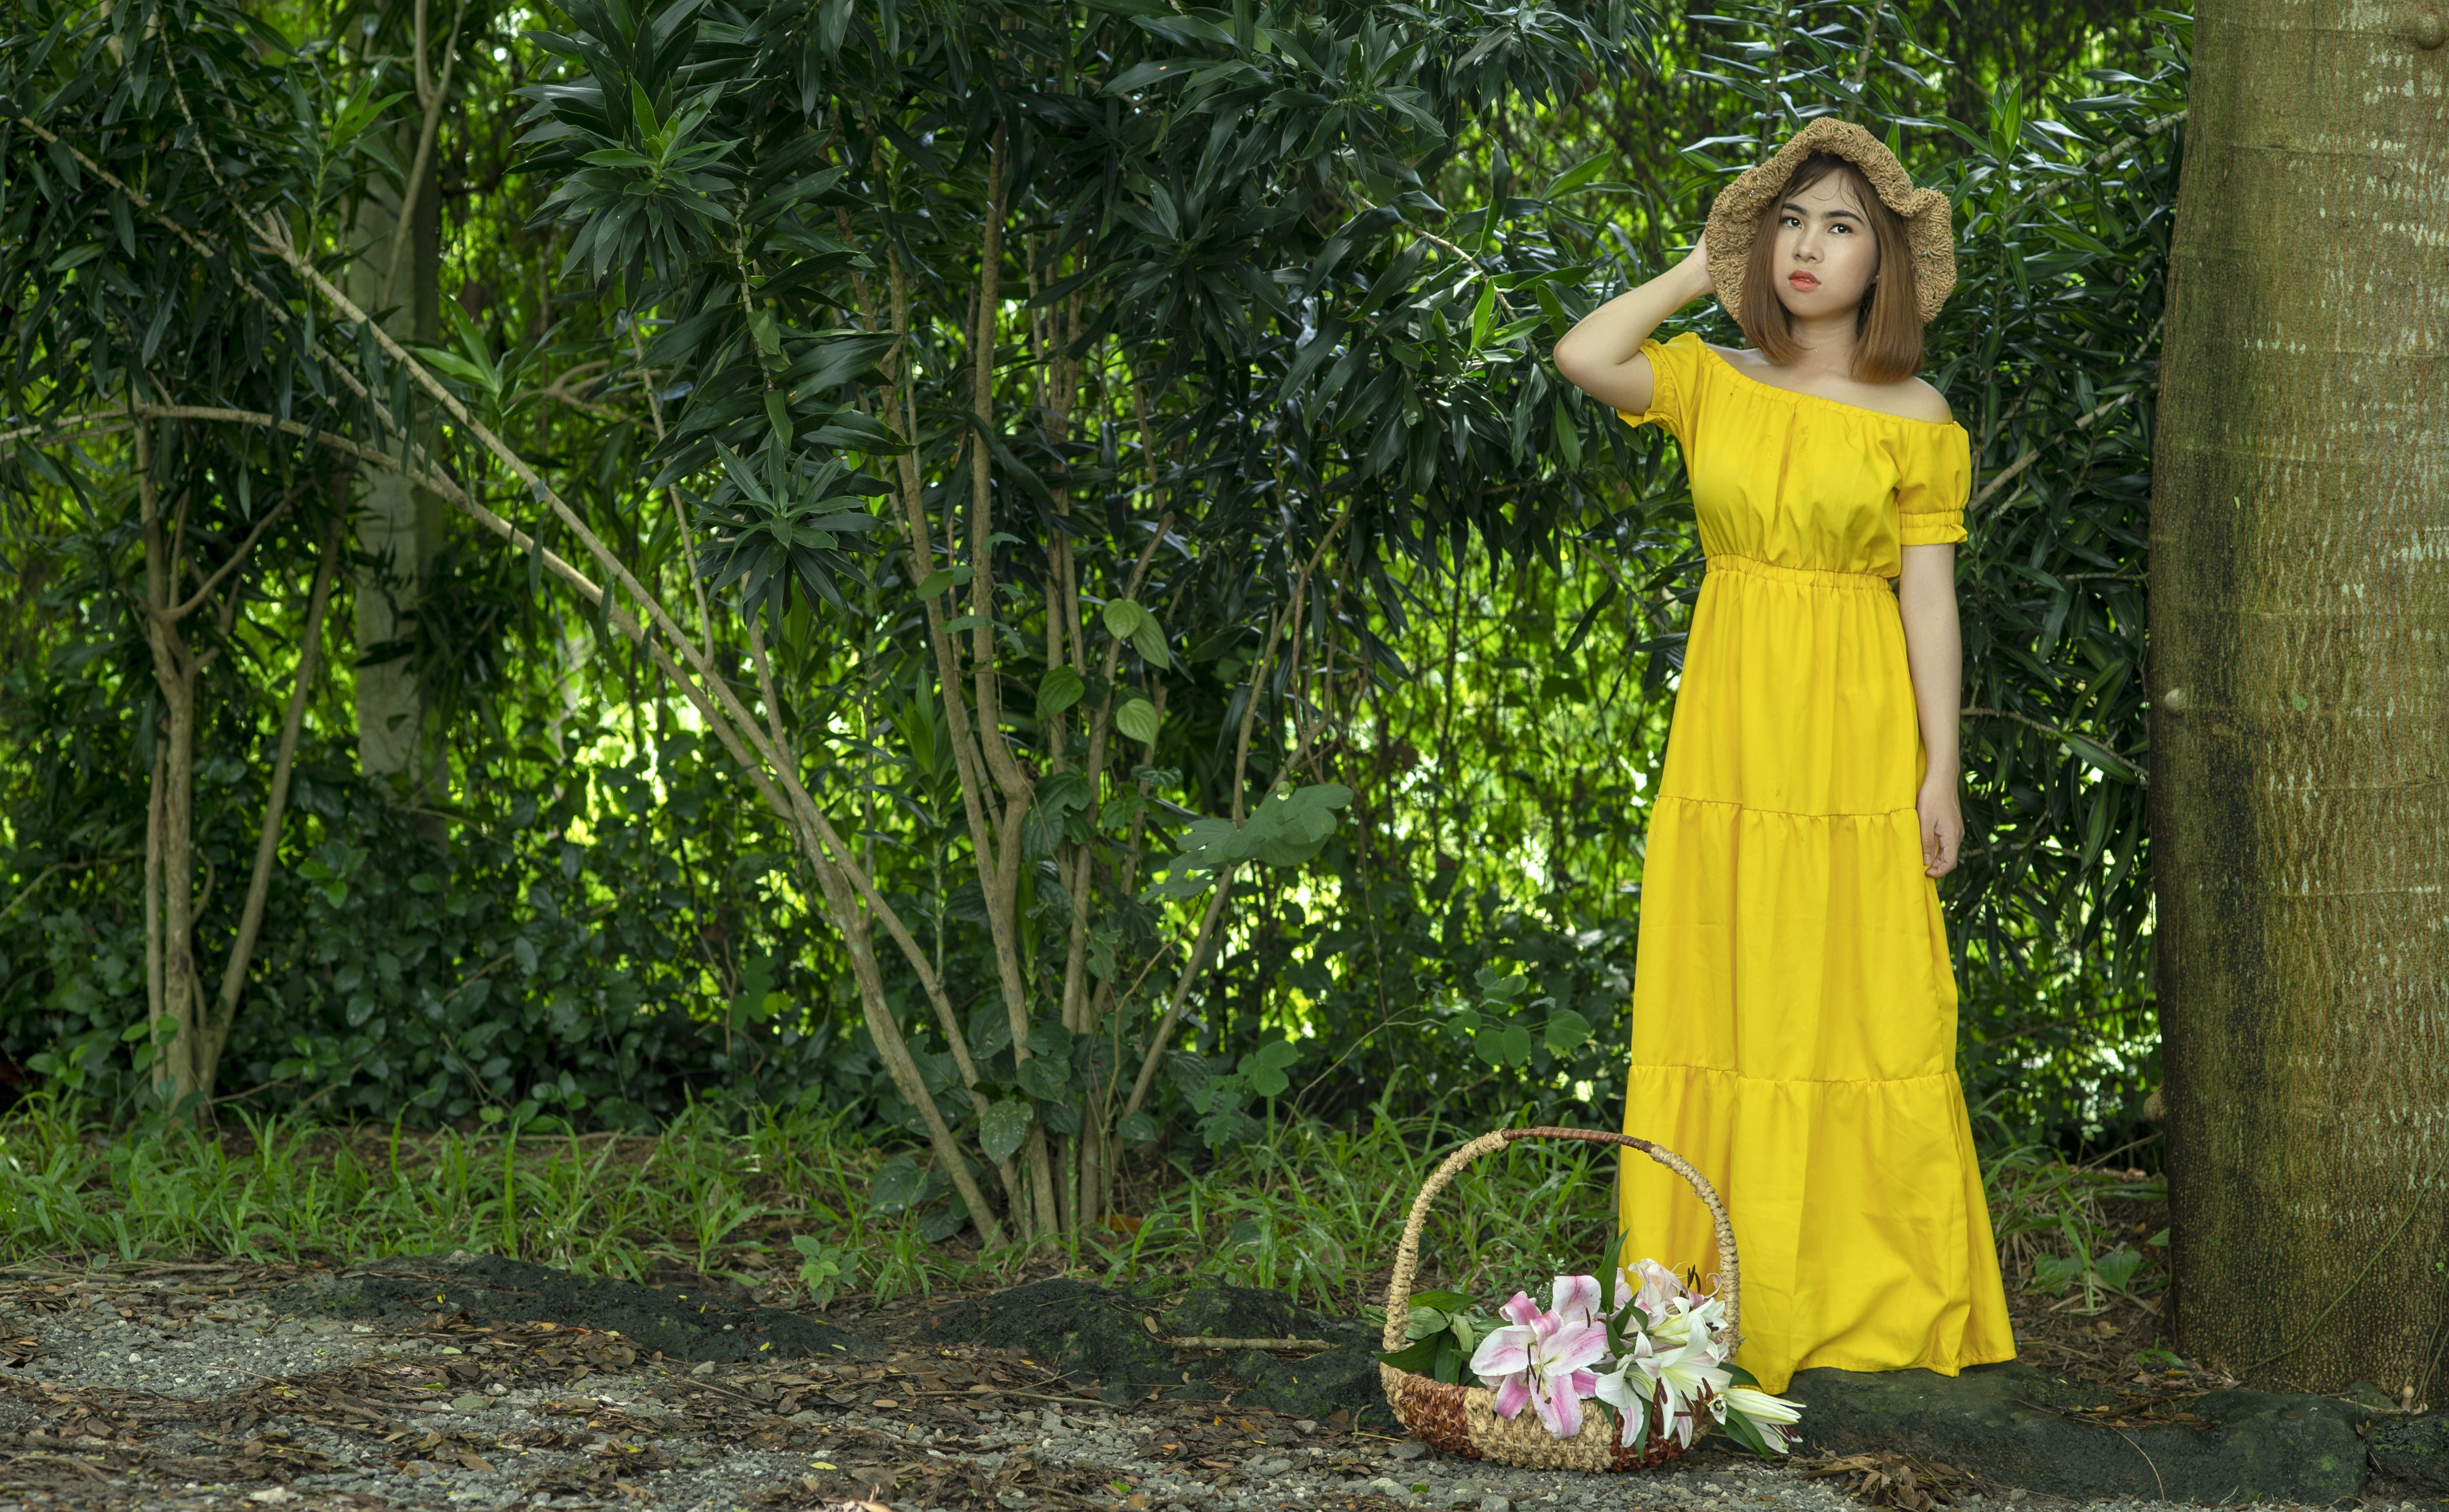 Woman Wearing Yellow Dress Beside Basket With Flowers